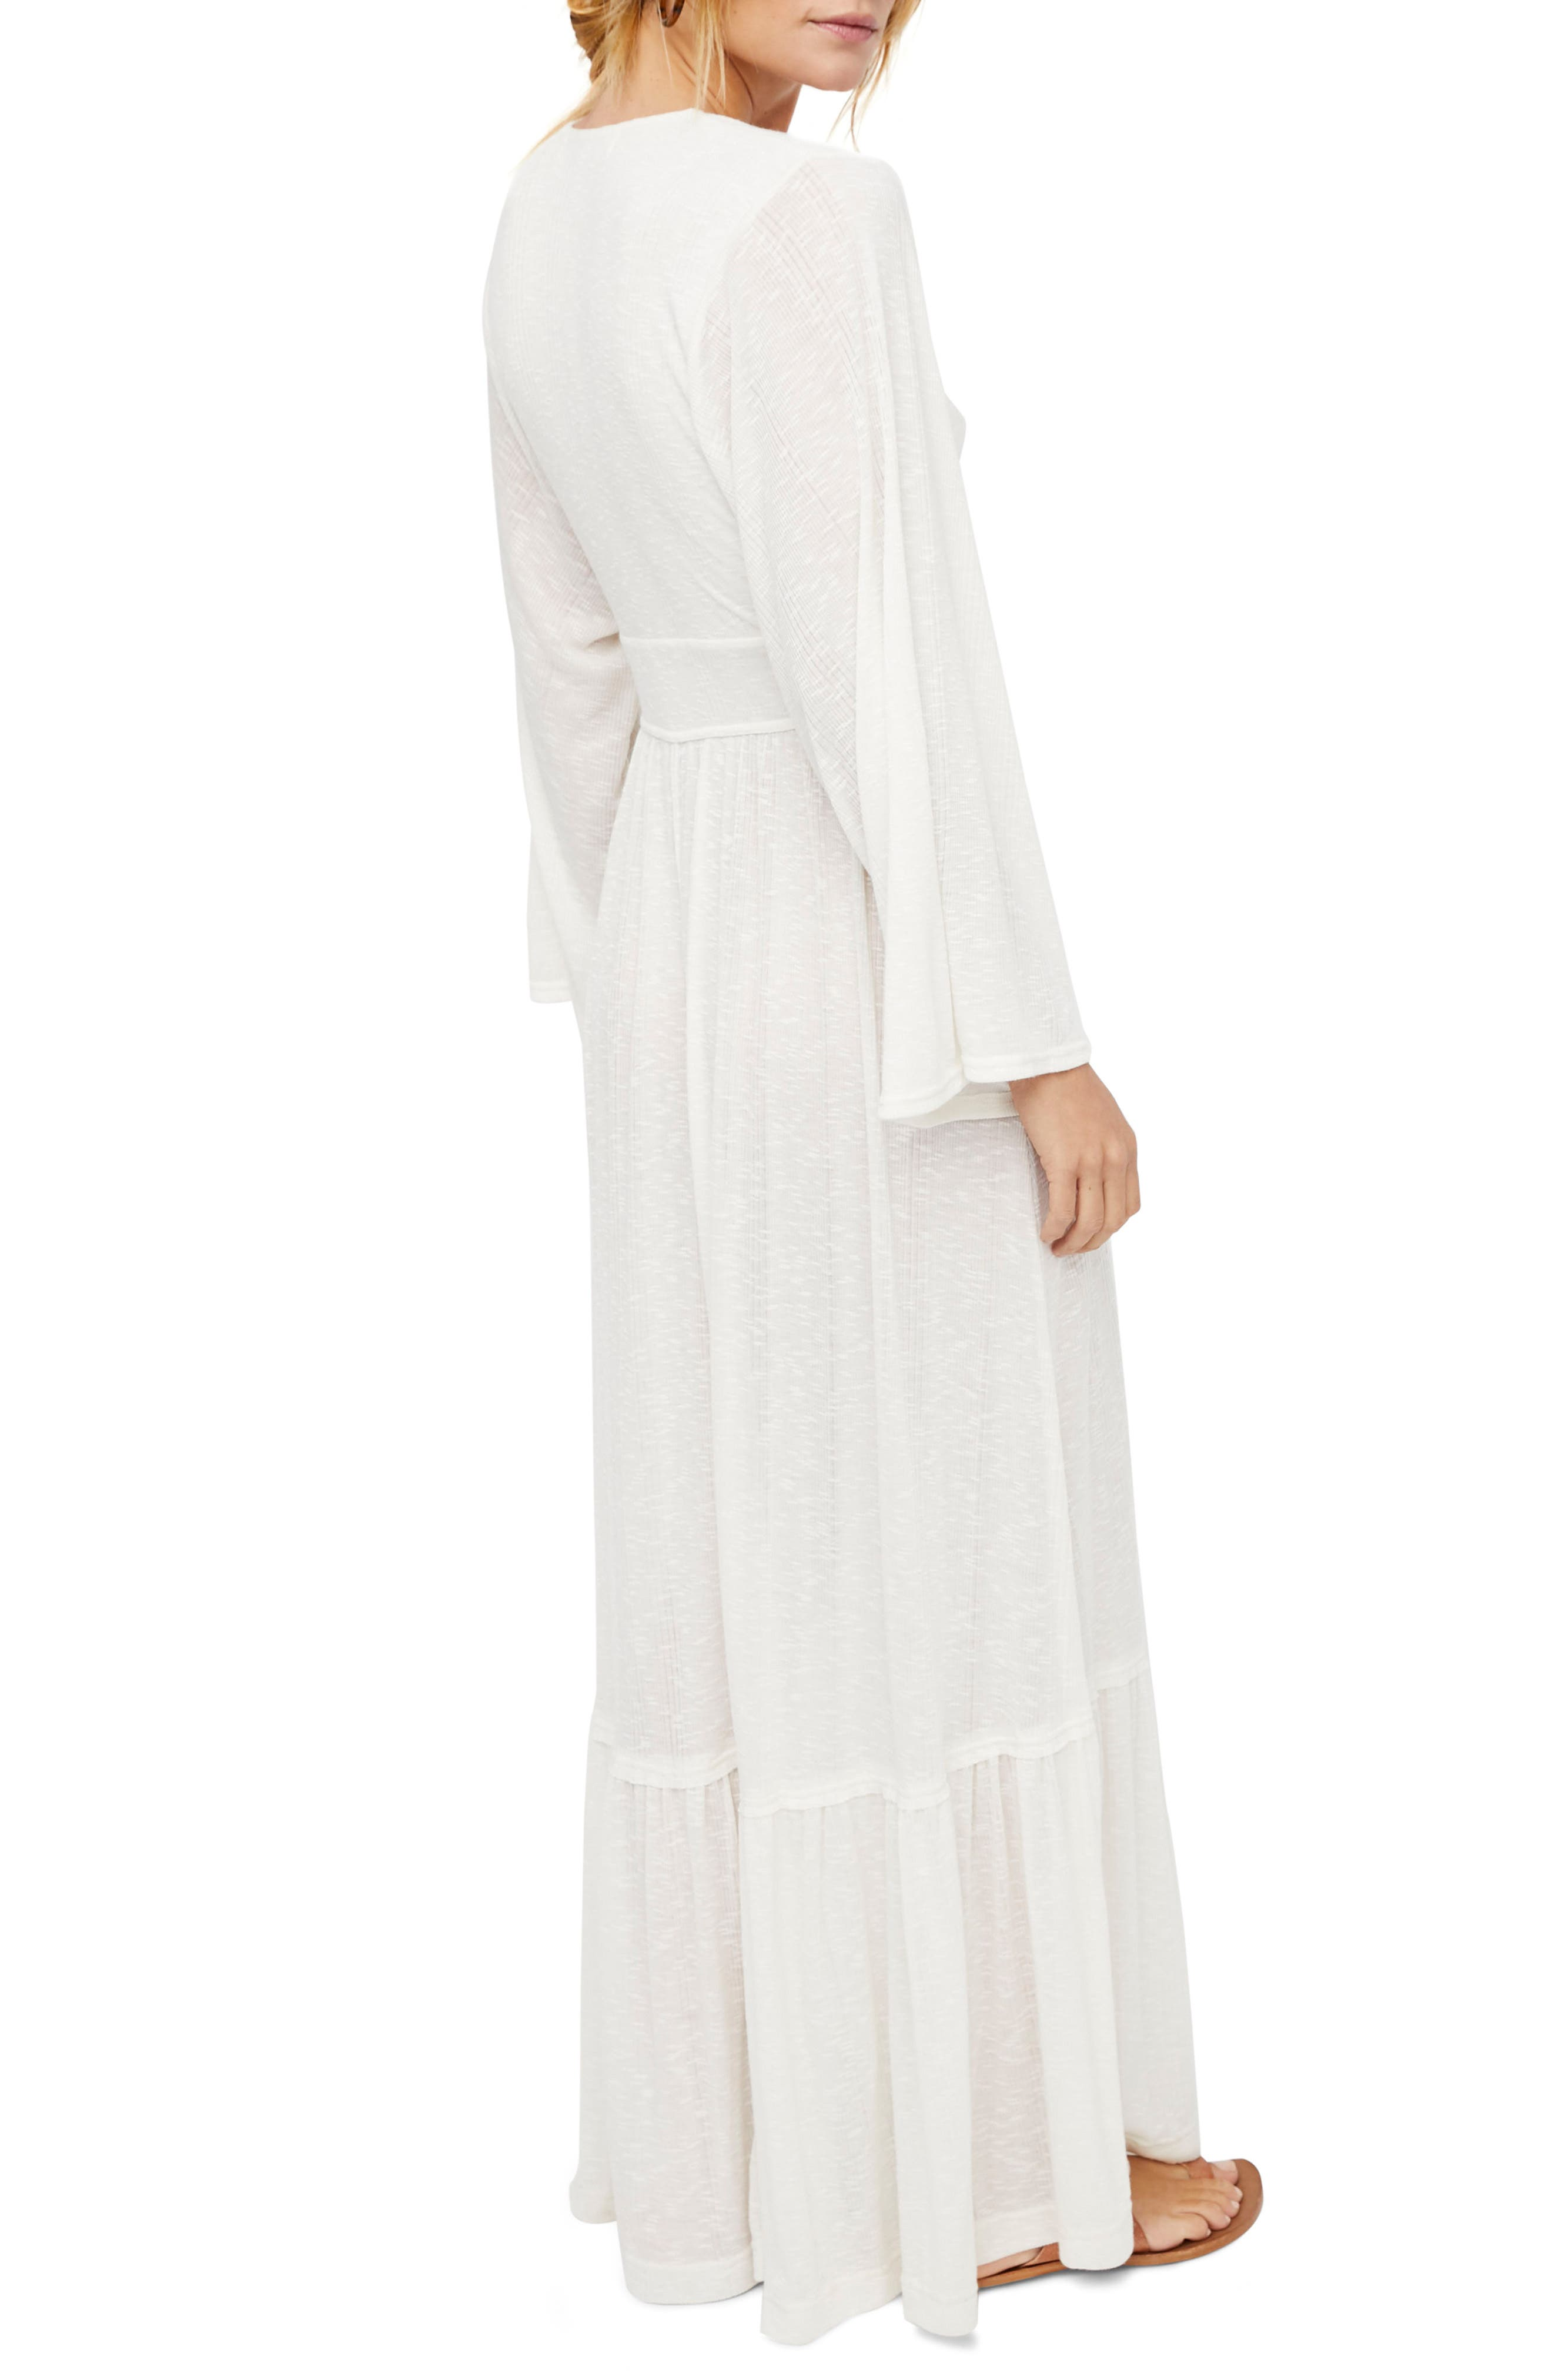 Endless Summer by Free People Moon Walking Maxi Dress,                             Alternate thumbnail 2, color,                             Ivory